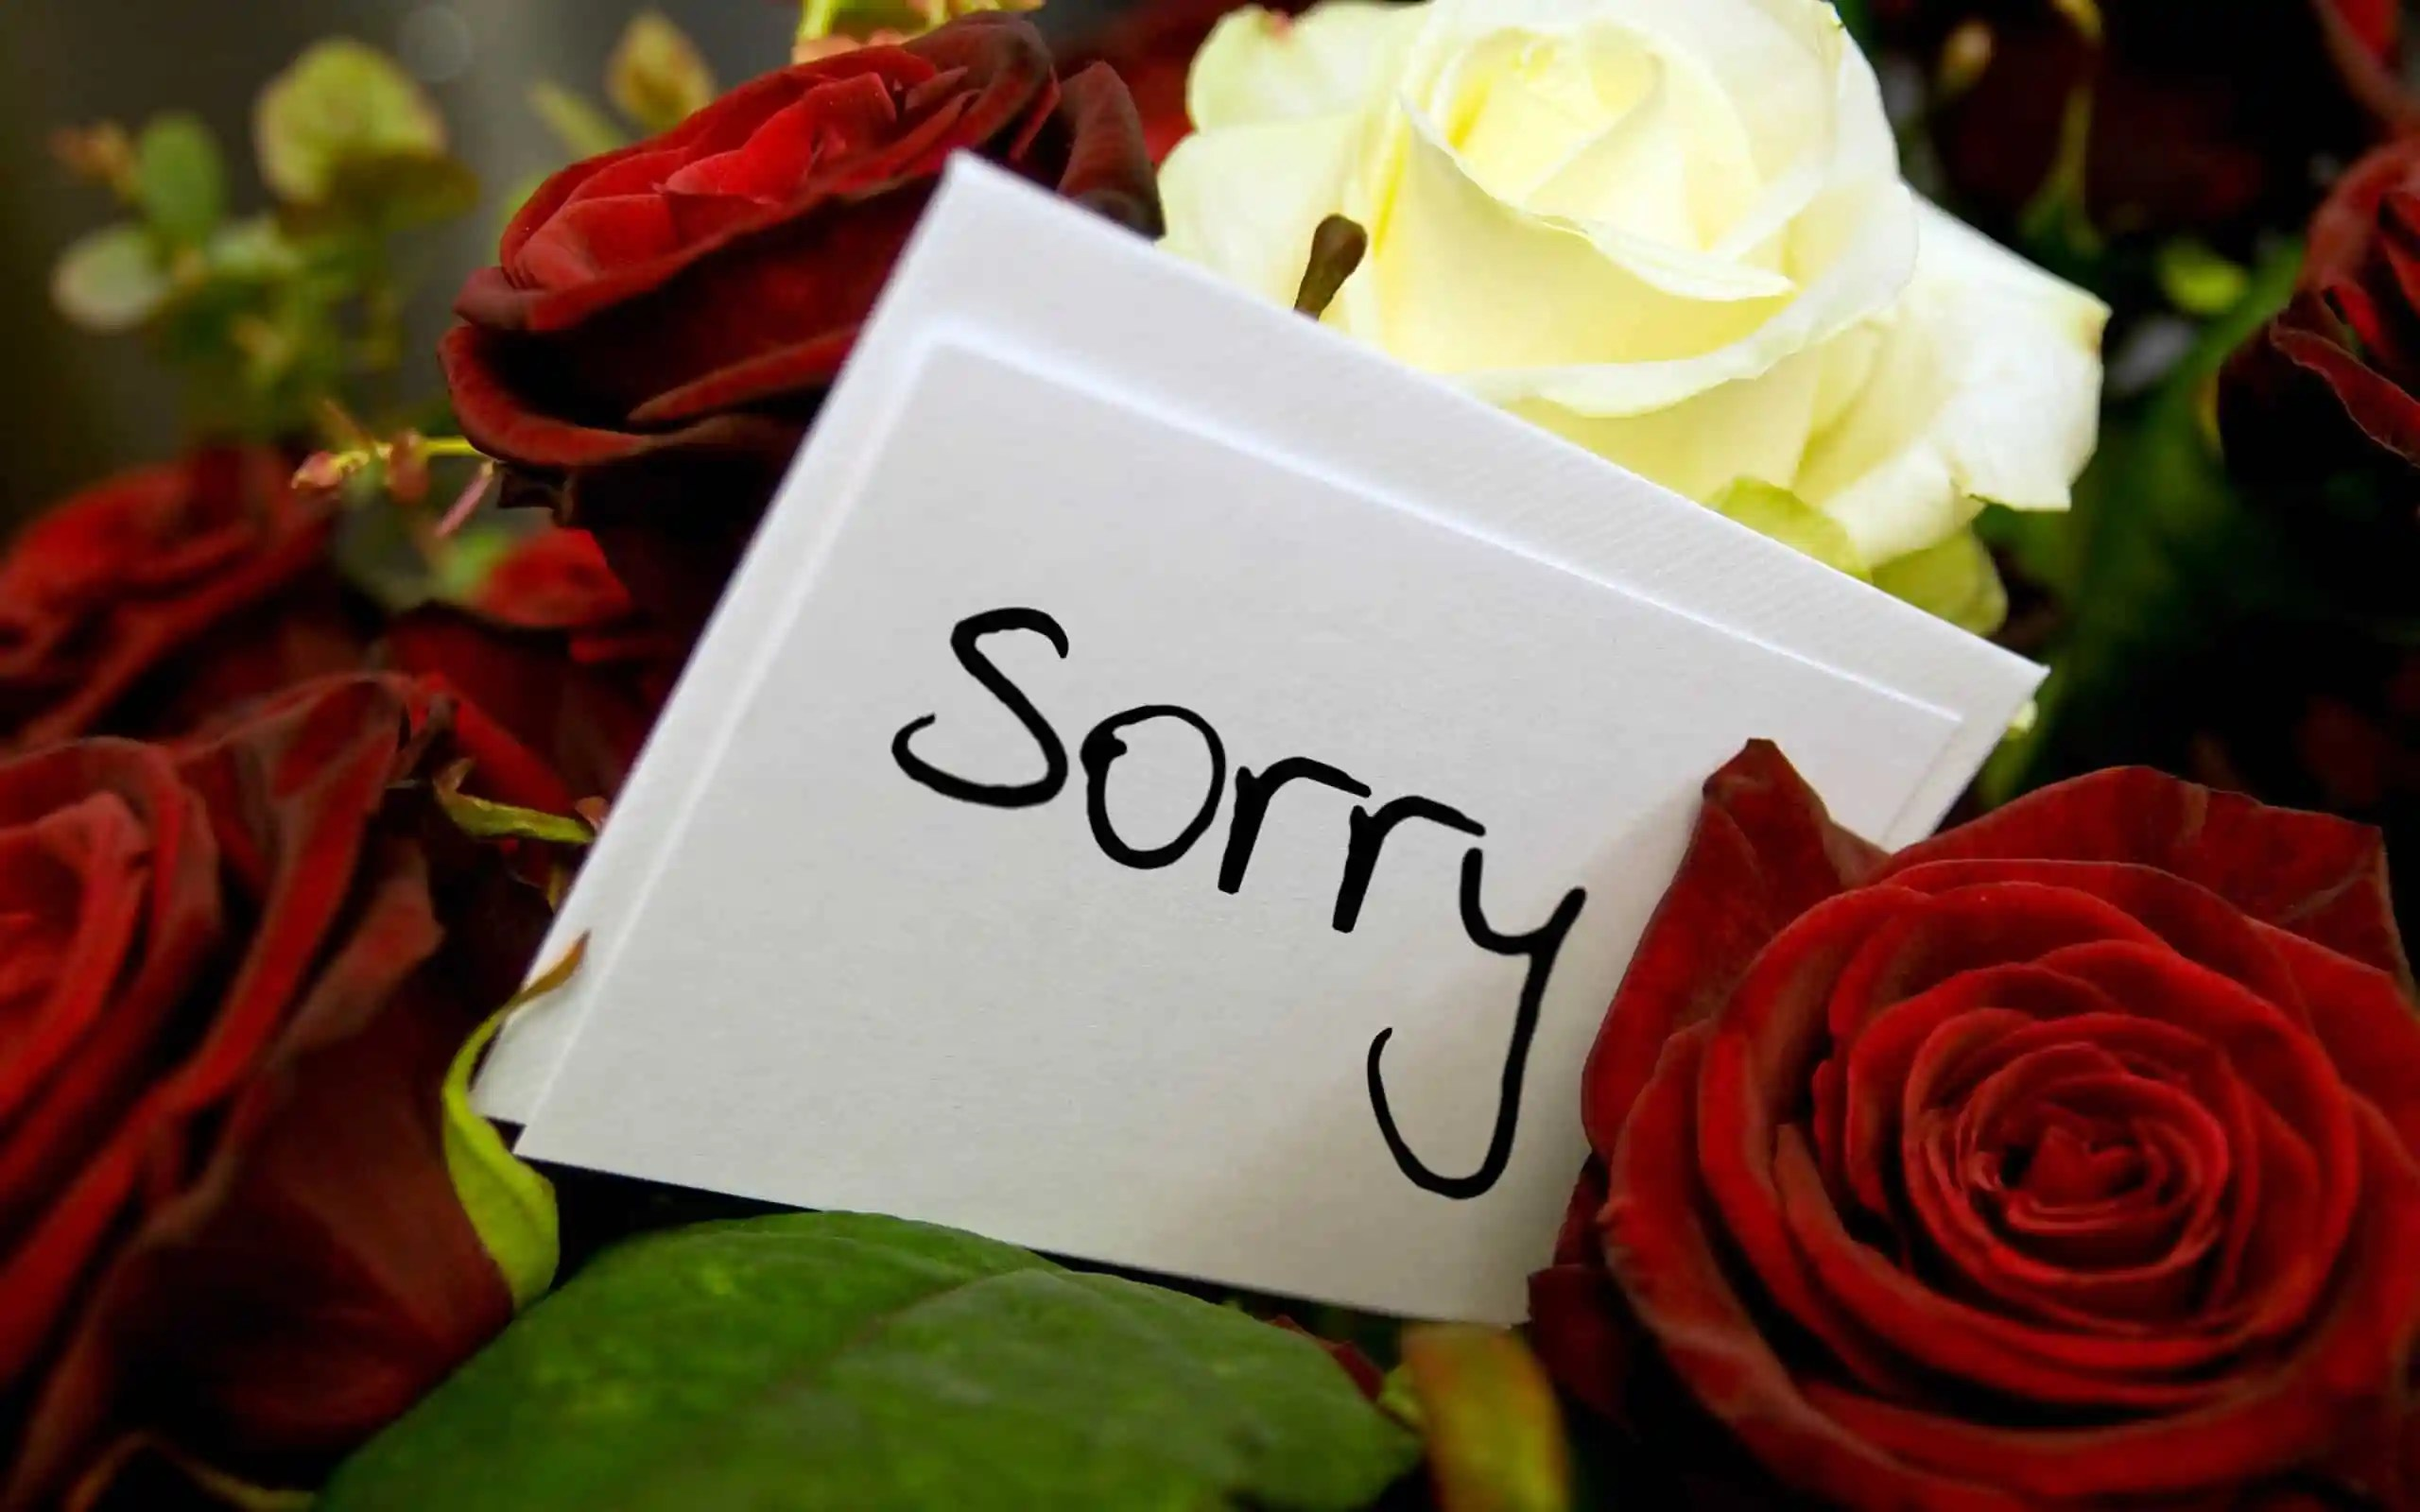 Absence Apology Letter Writing To Apologize For My Absence During